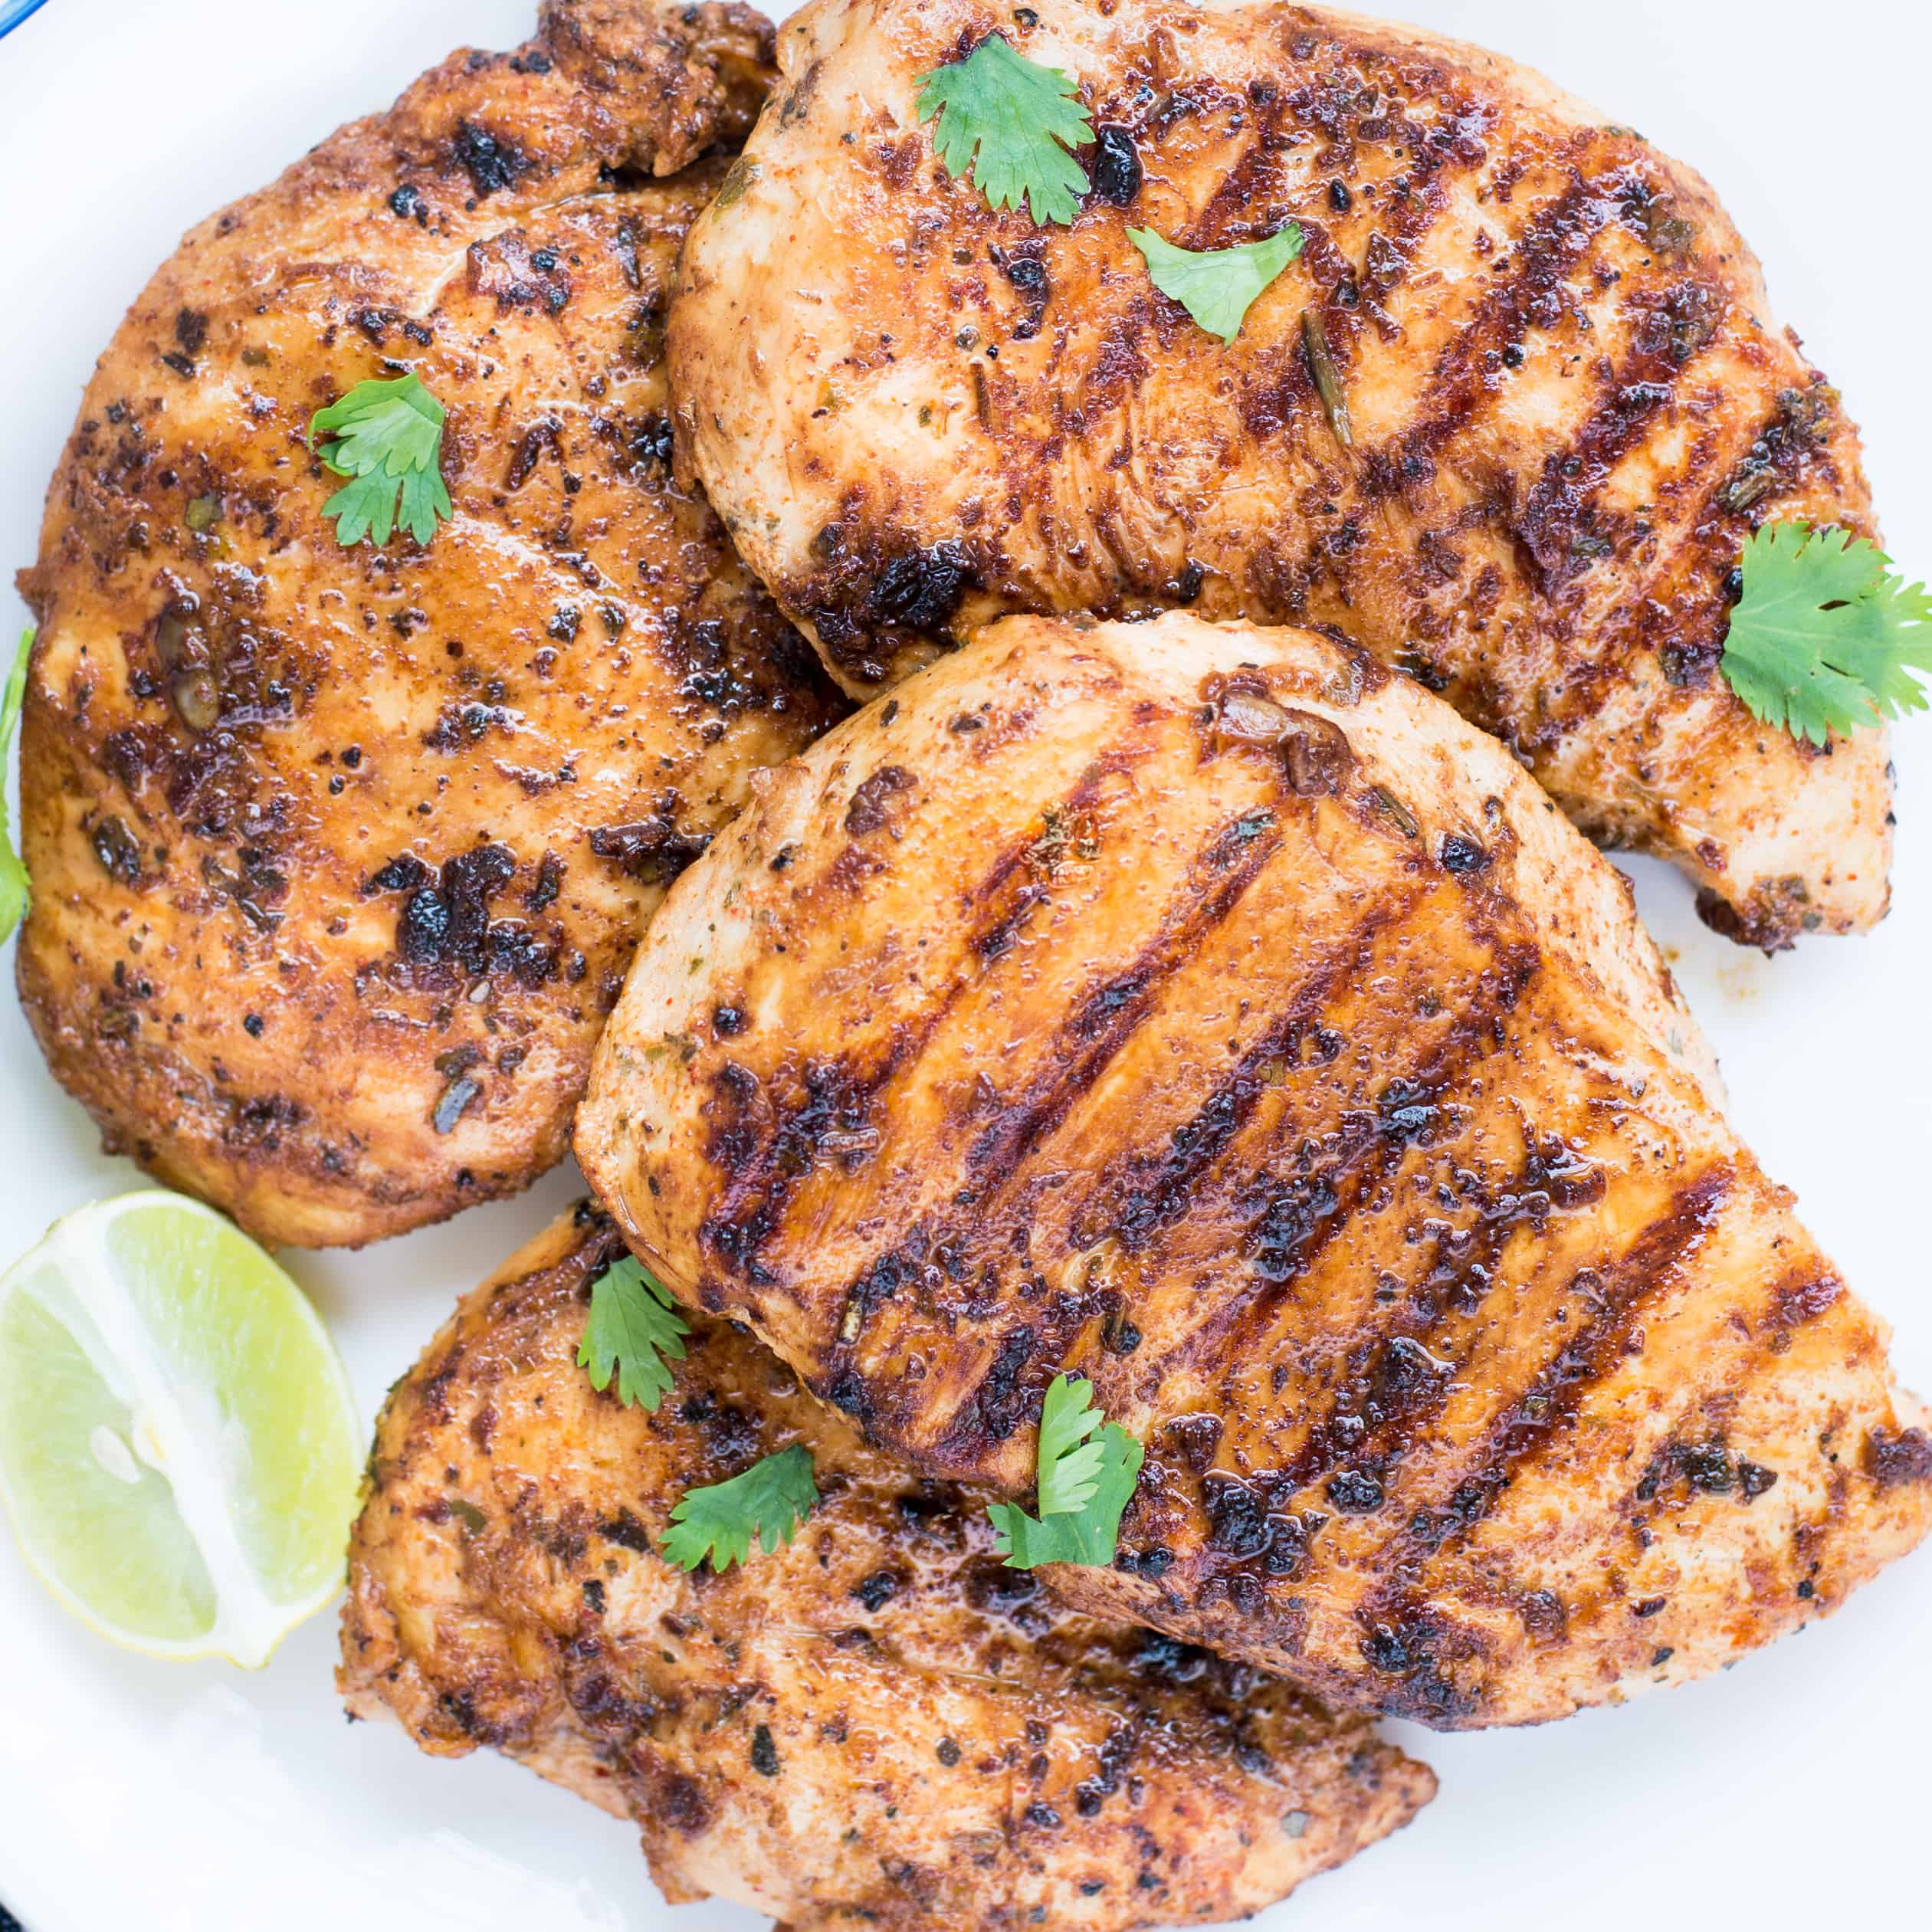 How To Make The Perfect Grilled Chicken Every Time - Beck and Bulow